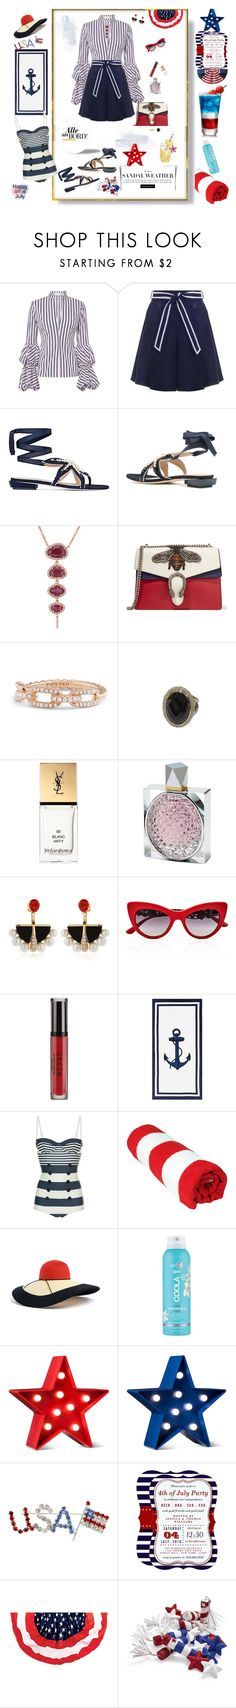 """Forth of July"" by deborah-518 ❤ liked on Polyvore featuring Caroline Constas, Zimmermann, Tory Burch, Anne Sisteron, Gucci, David Yurman, Yves Saint Laurent, STELLA McCARTNEY, Lalique and Dolce&Gabbana"